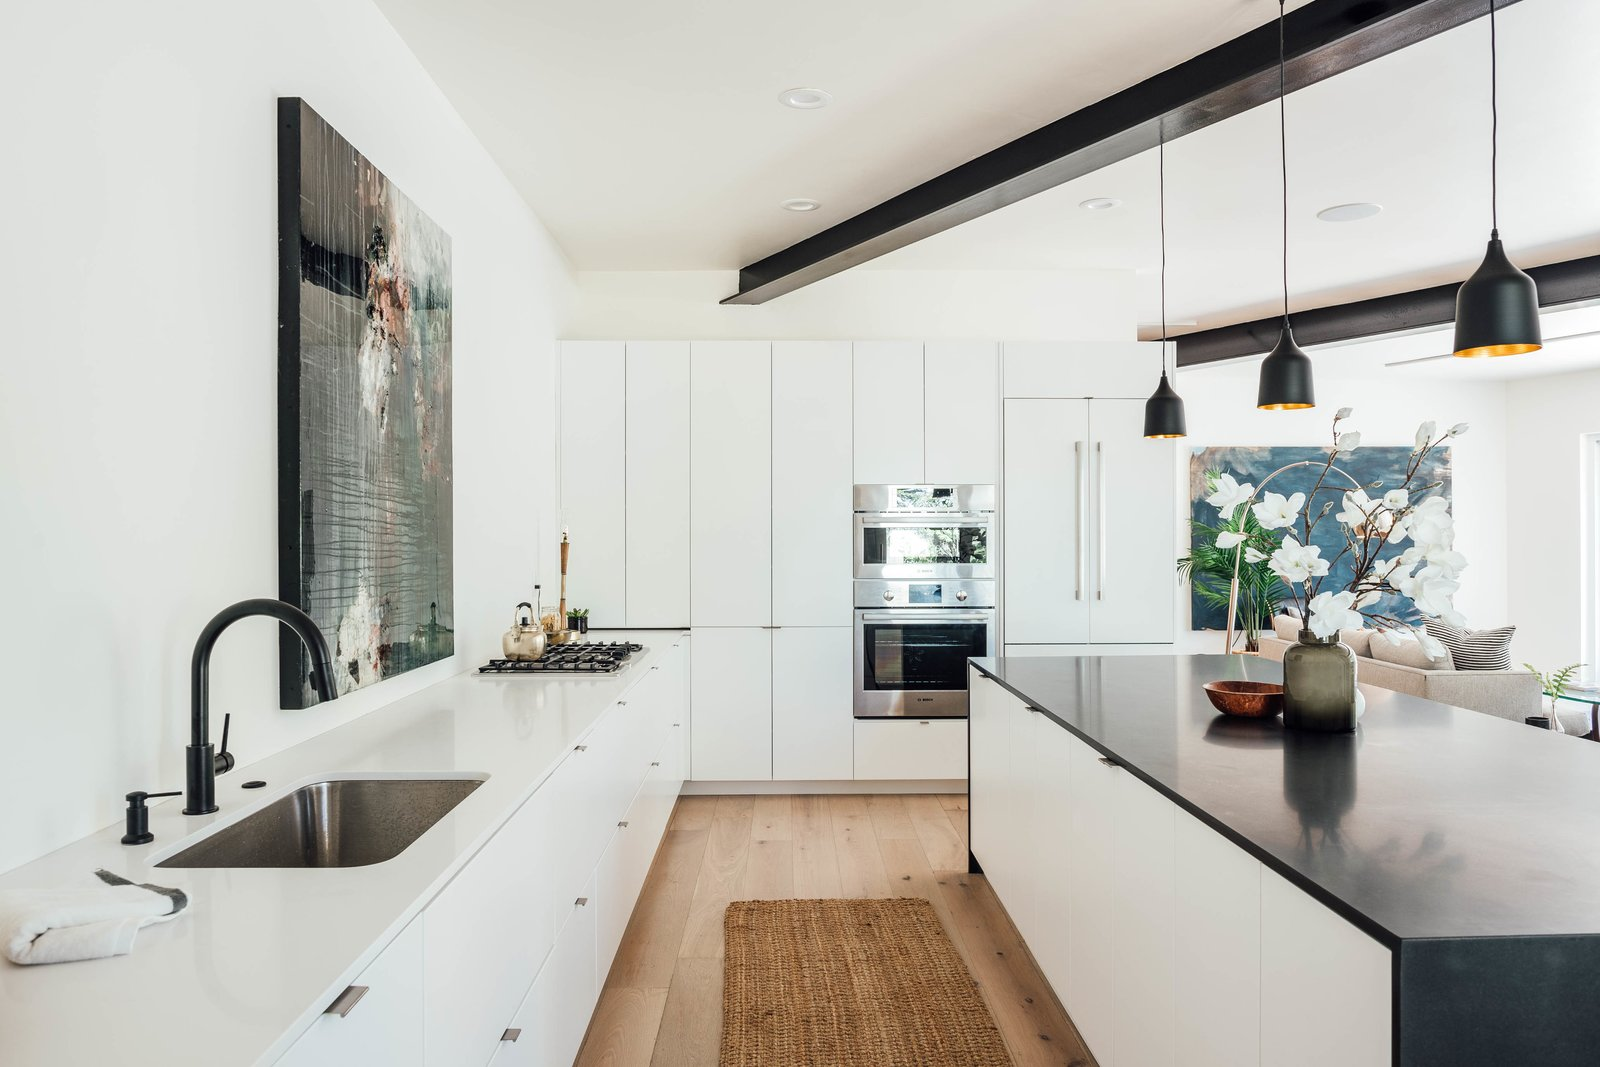 Kitchen, Recessed Lighting, Light Hardwood Floor, Wall Oven, Refrigerator, Pendant Lighting, Undermount Sink, White Cabinet, Rug Floor, and Cooktops The open kitchen provides plenty of workspace and storage.  Best Photos from This Passive House in Park City Just Hit the Market For $1.1M